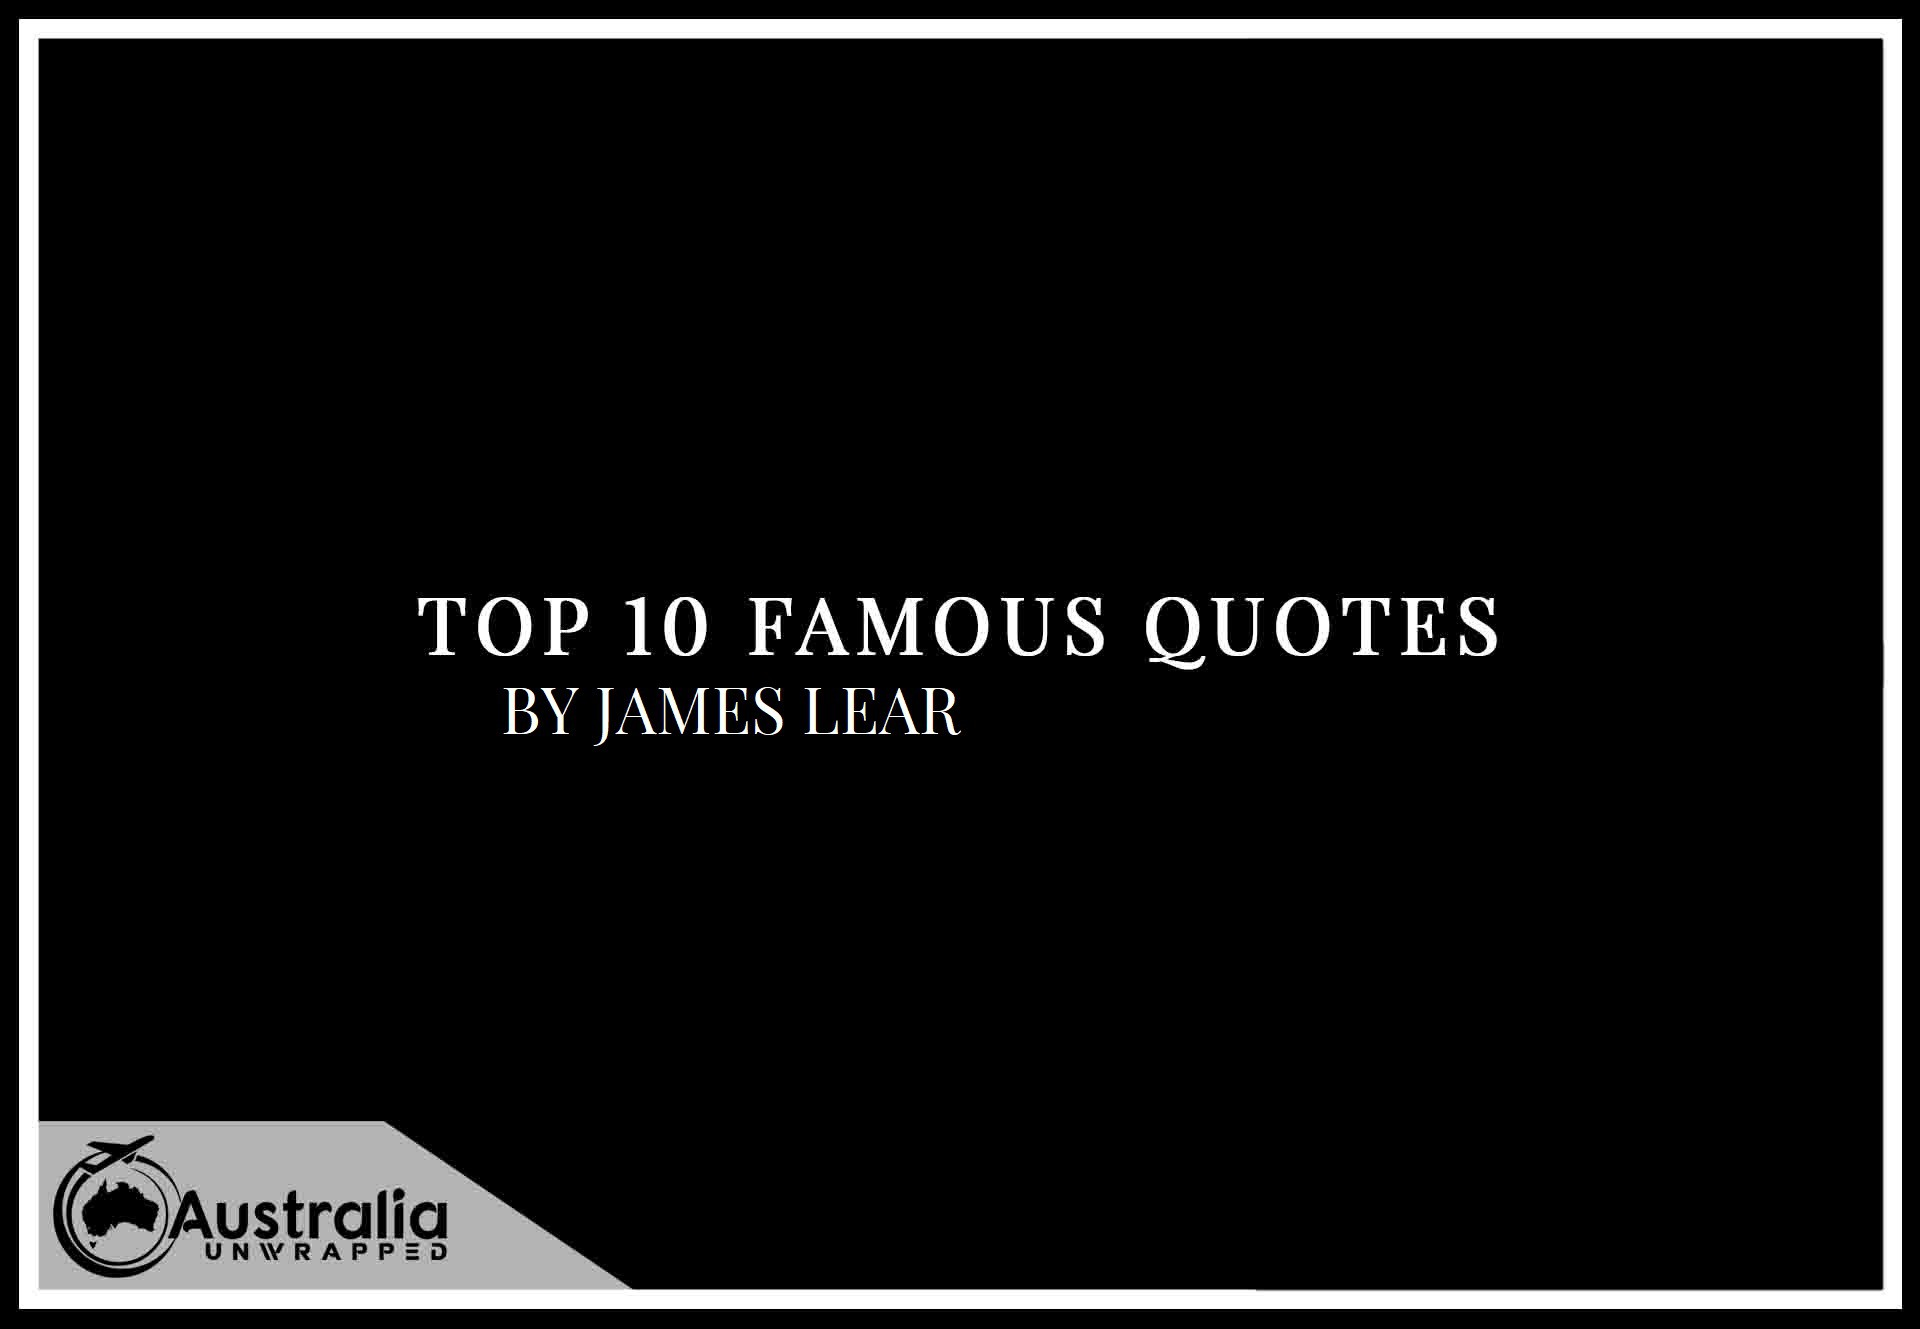 Top 10 Famous Quotes by Author James Lear